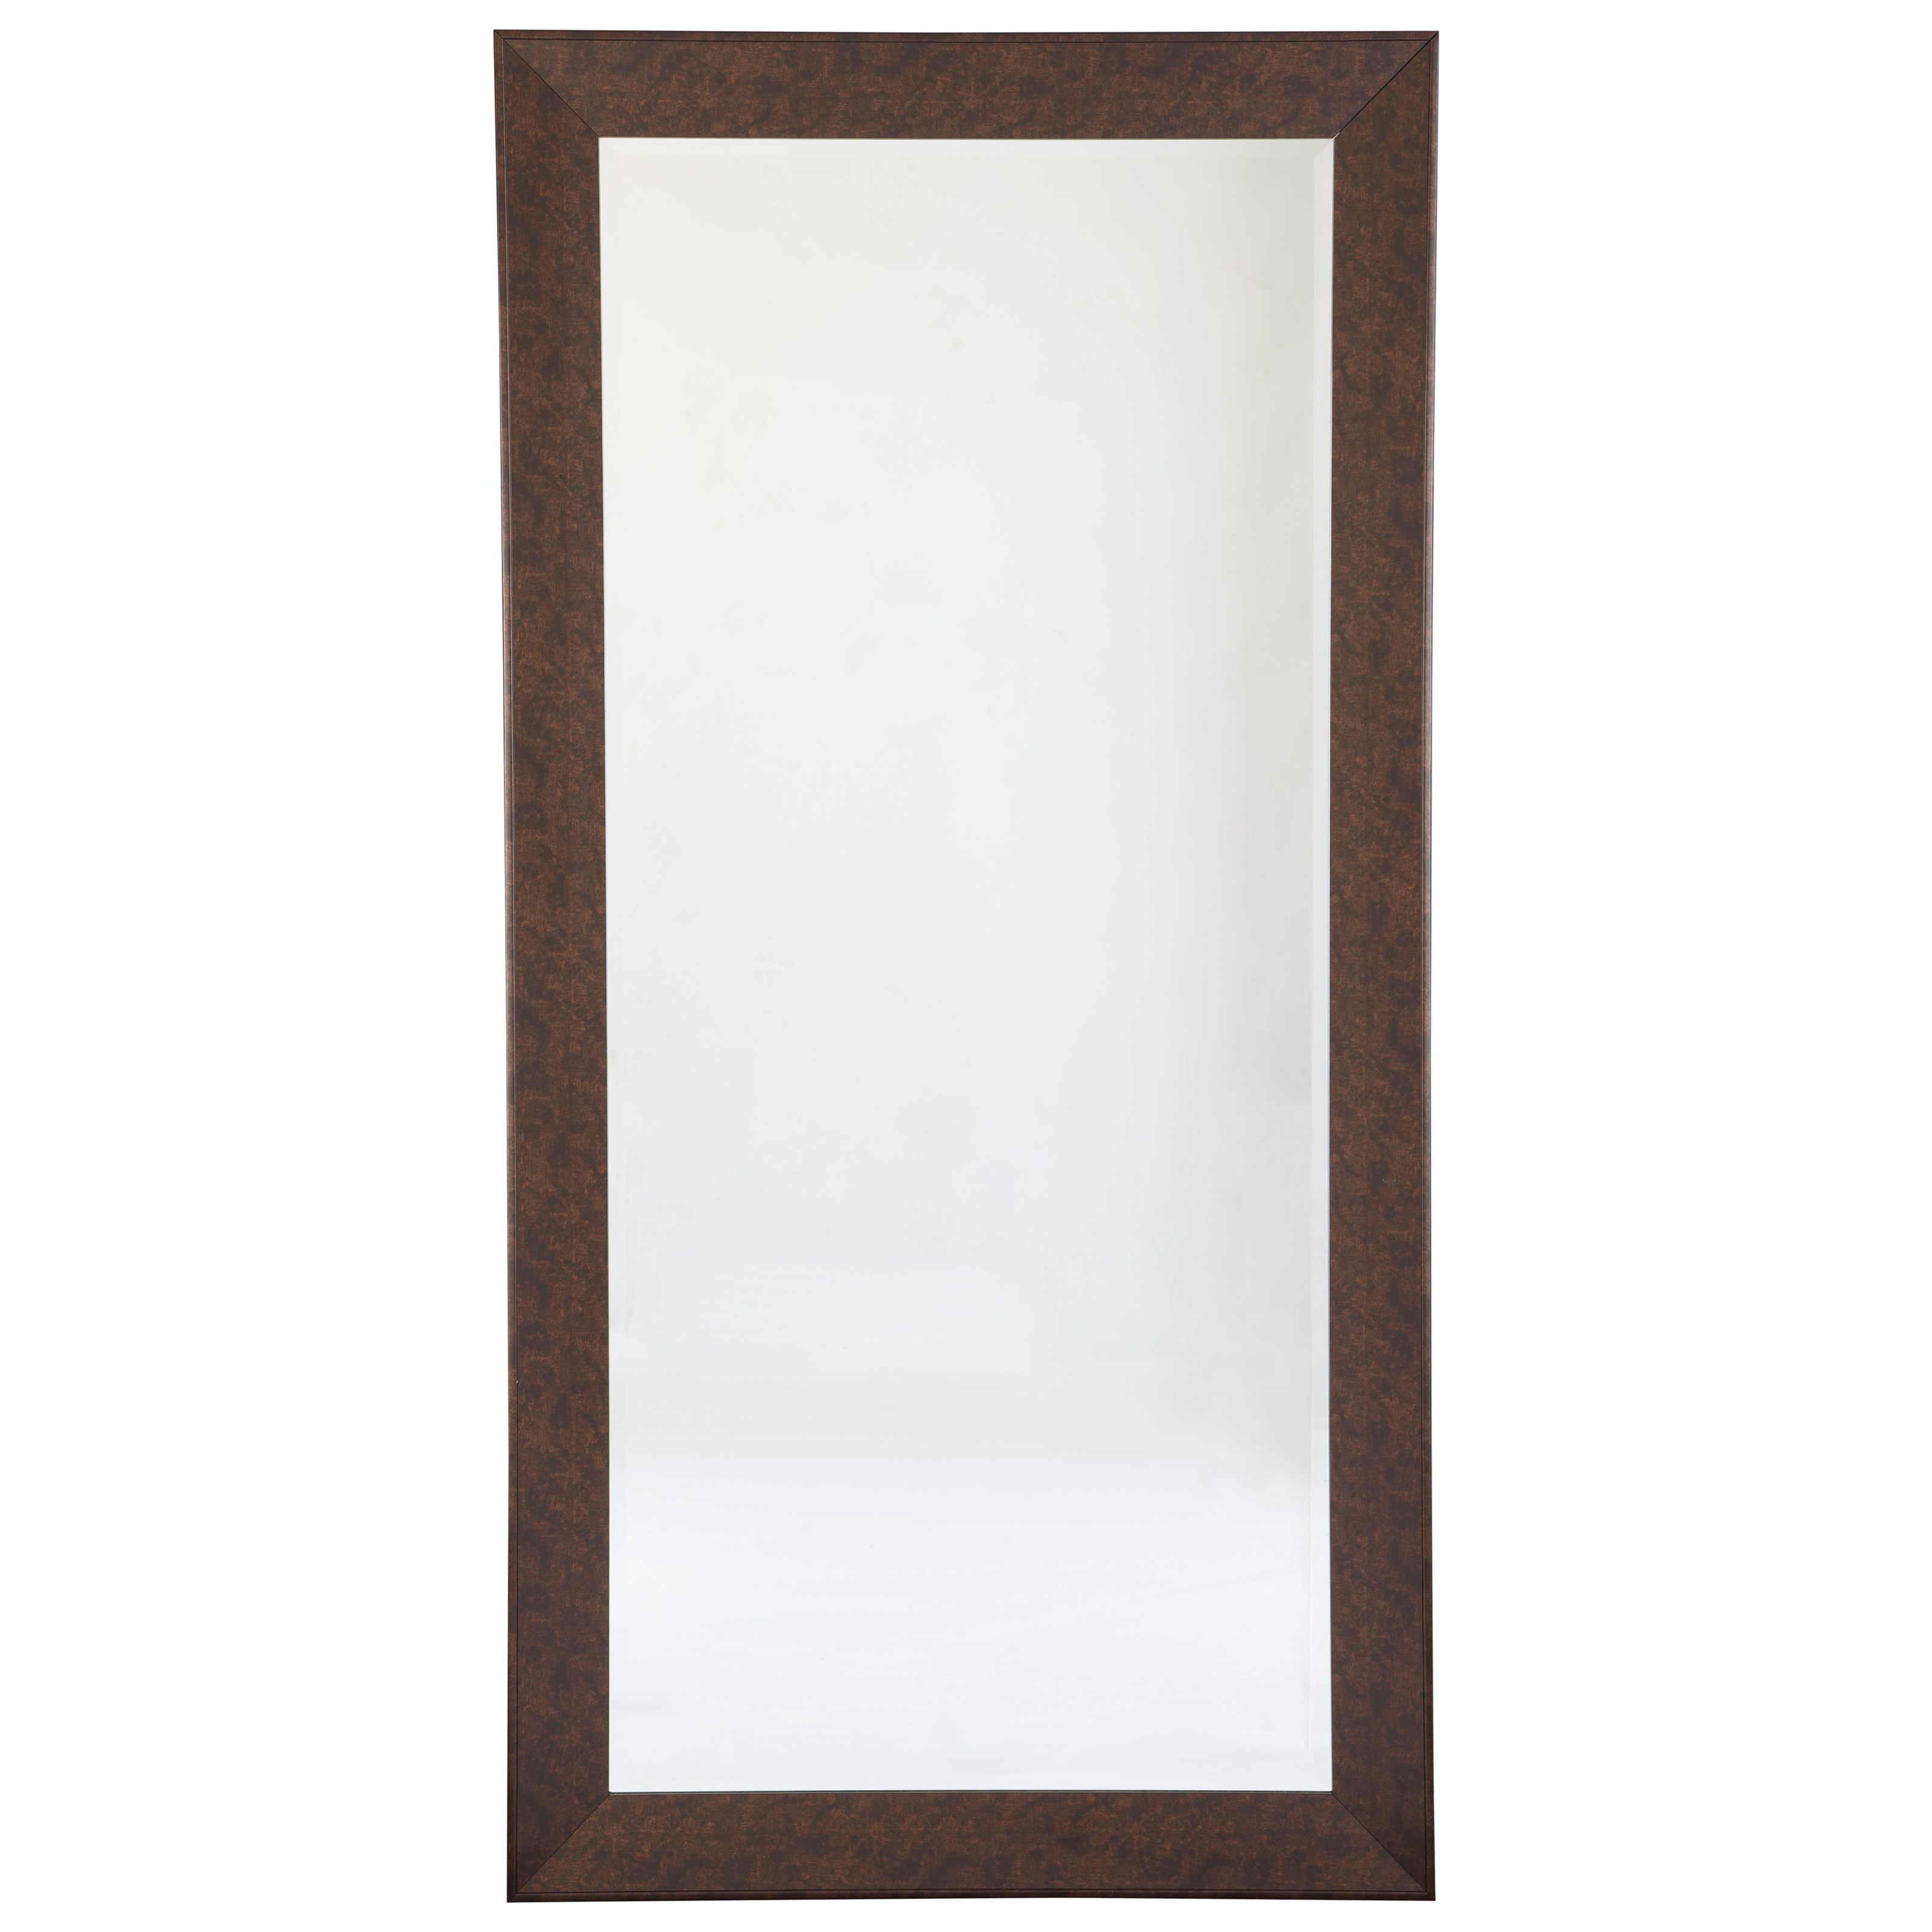 Lease To Own Furniture At Ashley Furniture Bedroom Furniture Floor Mirrors Signature Design by Ashley Furniture ...